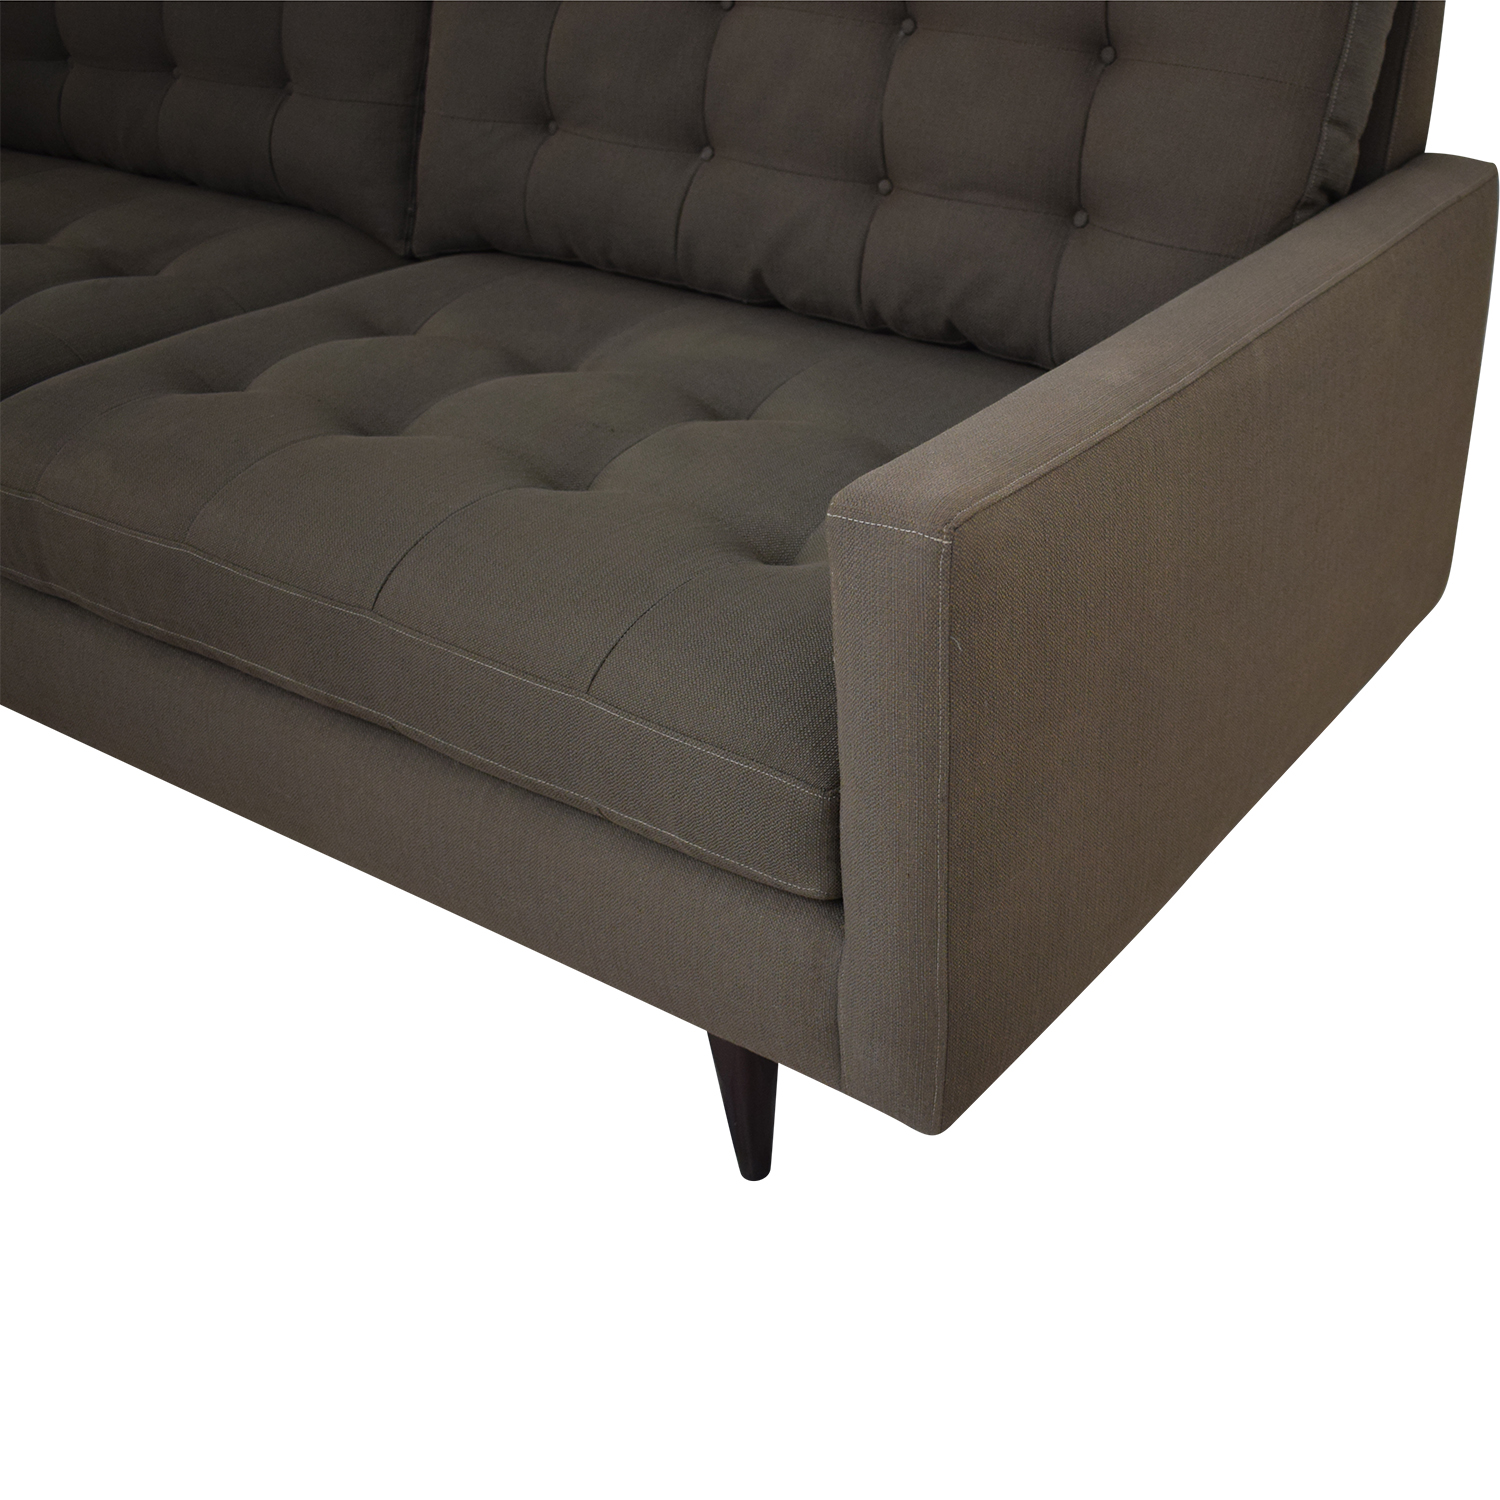 Magnificent 71 Off Crate Barrel Crate Barrel Petrie Mid Century Sofa Sofas Pabps2019 Chair Design Images Pabps2019Com